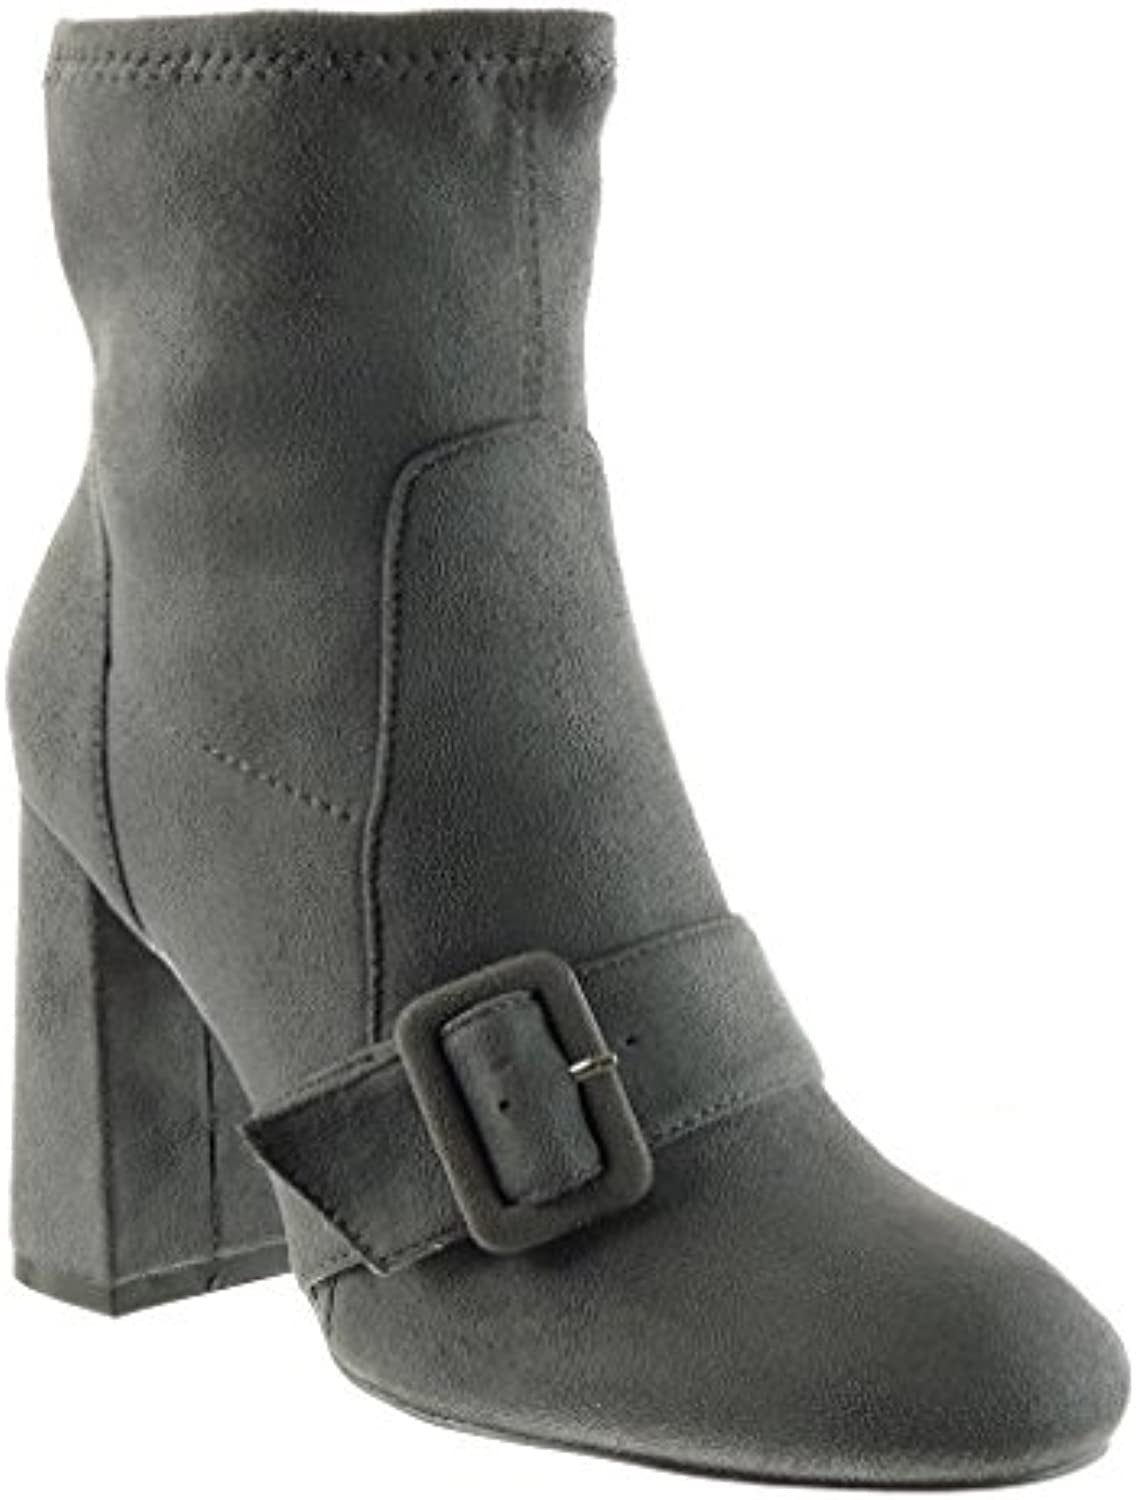 6e6eaeac22627c Angkorly - Women s Fashion Shoes buckle Ankle high boots thong - Booty -  cavalier - soft - thong - buckle Block high heel 9 CM B074KMMVTP Parent  a85a7f8